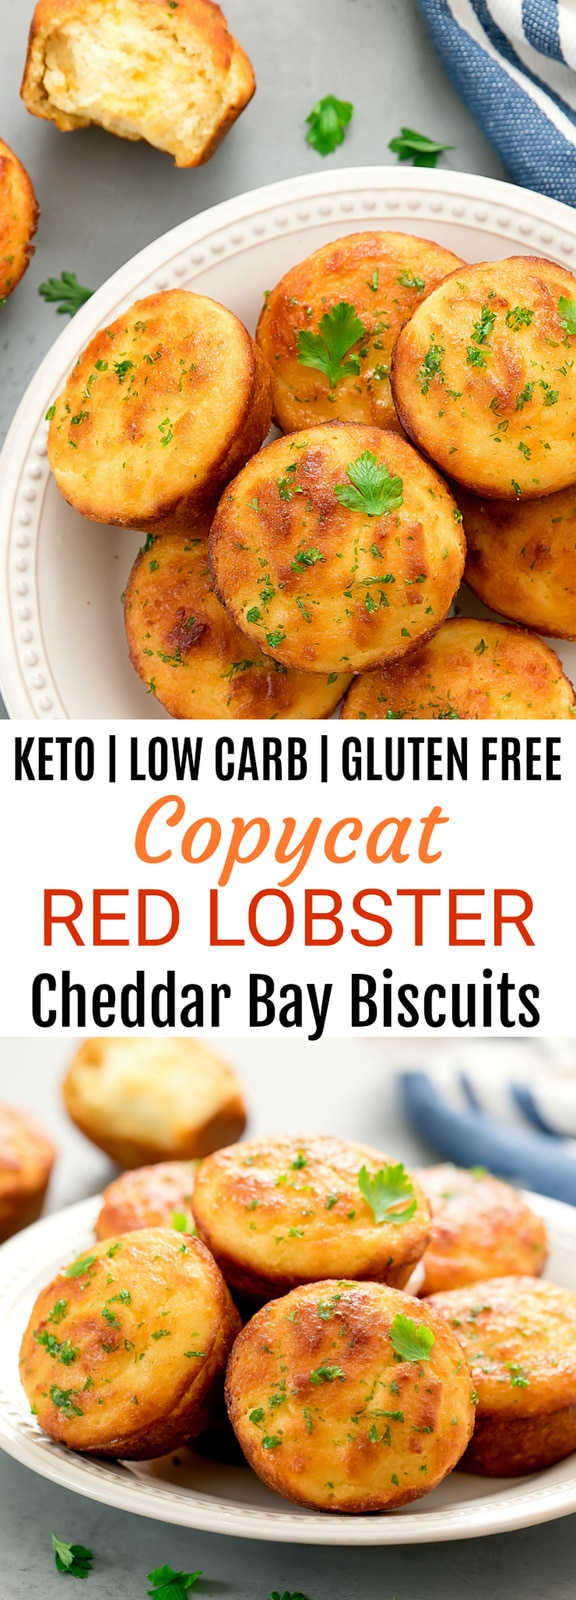 Keto Low Carb Copycat Red Lobster Cheddar Bay Biscuits. These biscuits are tender, fluffy and taste like the restaurant version.